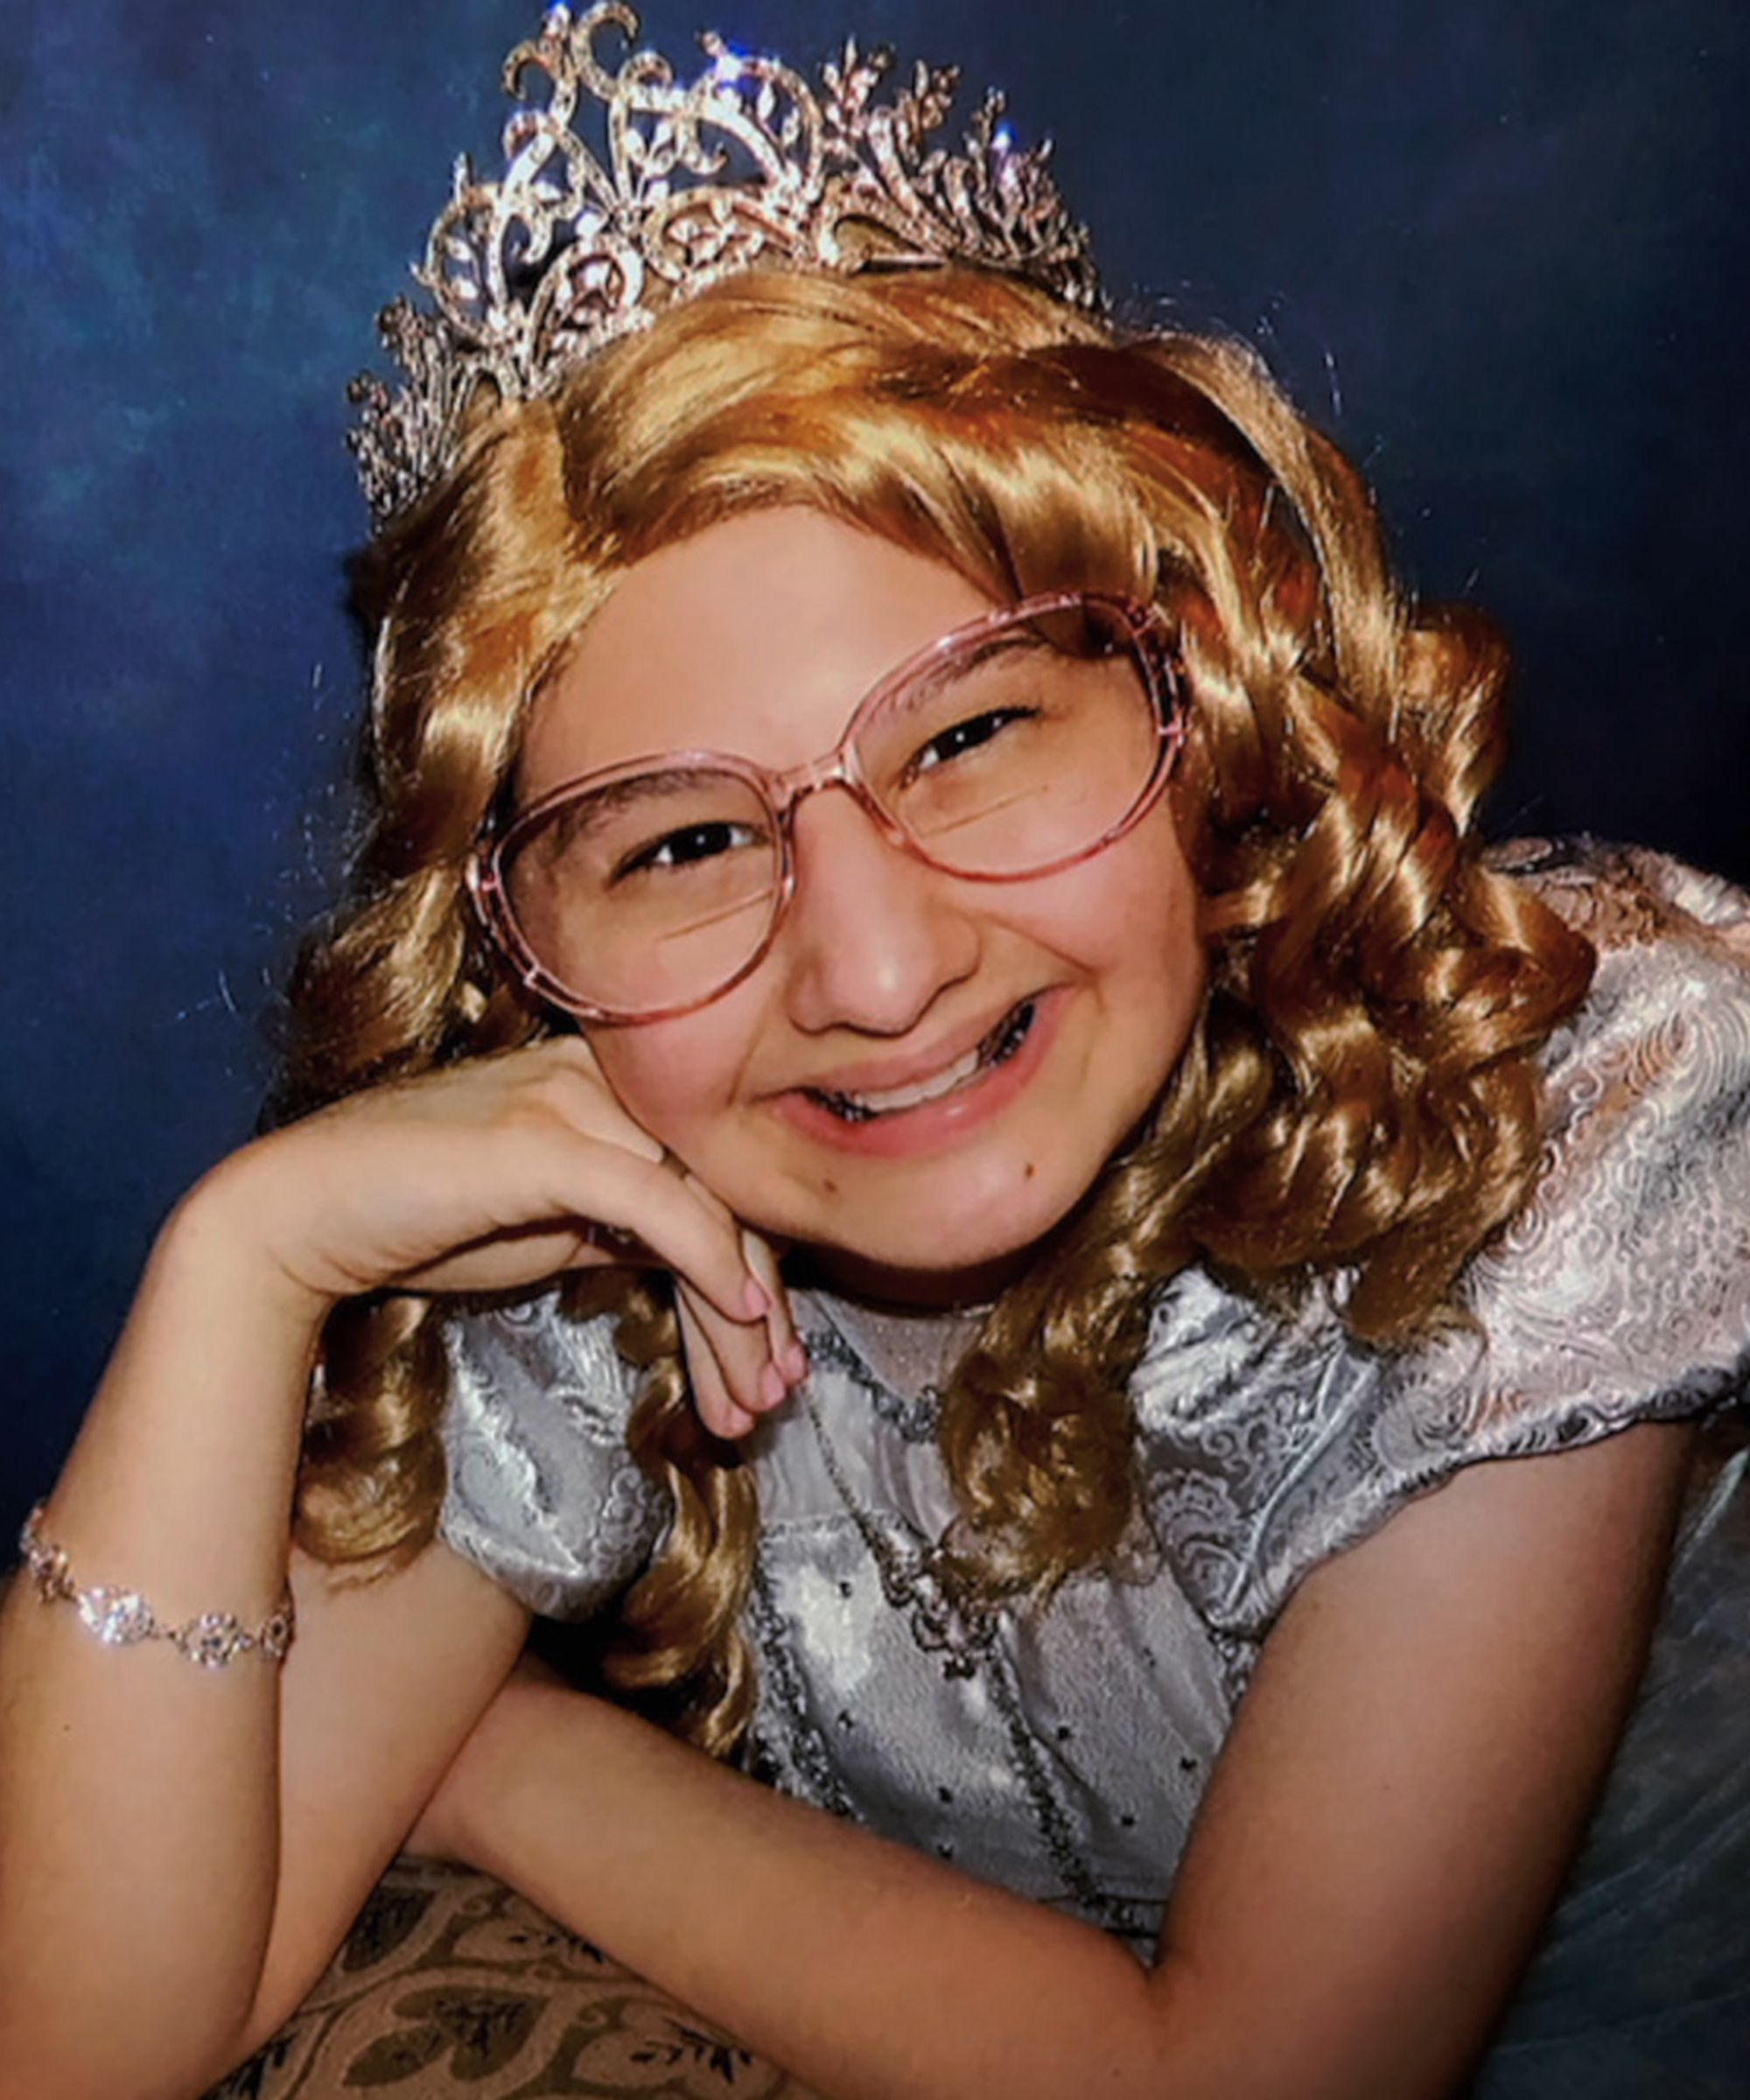 Gypsy Rose Blanchard's Father Tells His Side Of The Story In